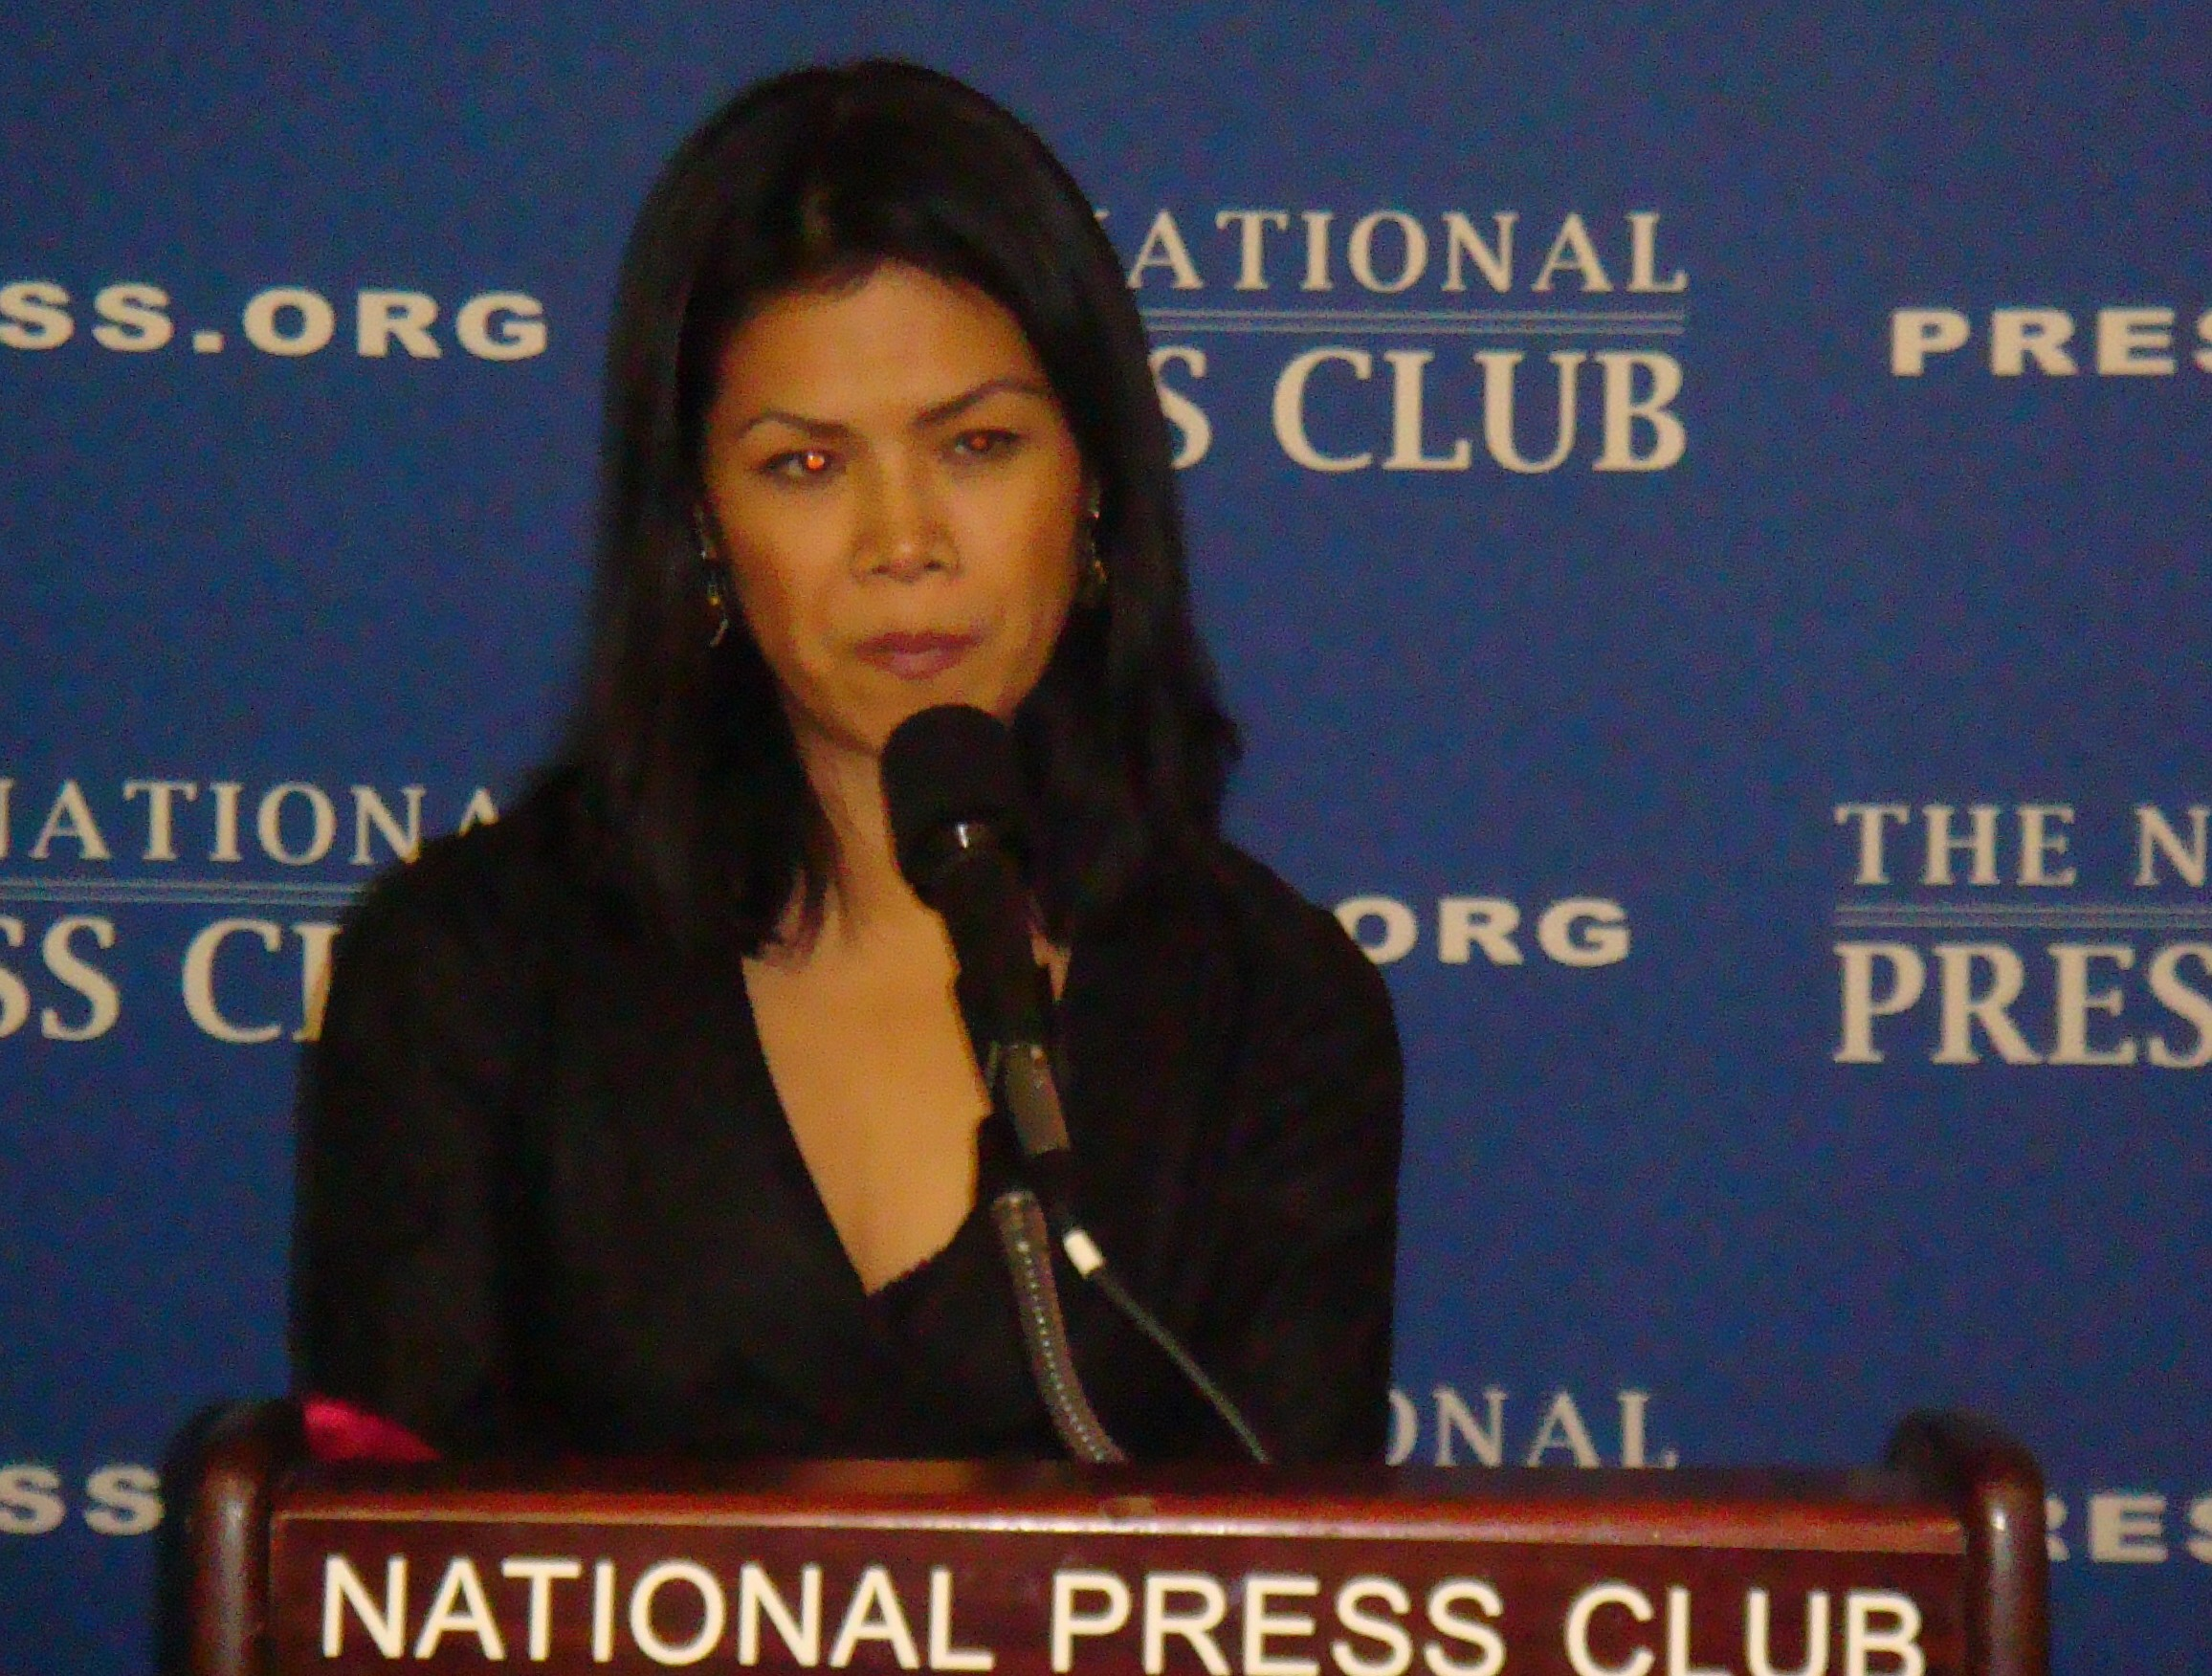 Theary Seng speaking at National Press Club's Newsmaker Program, 5 March 2010